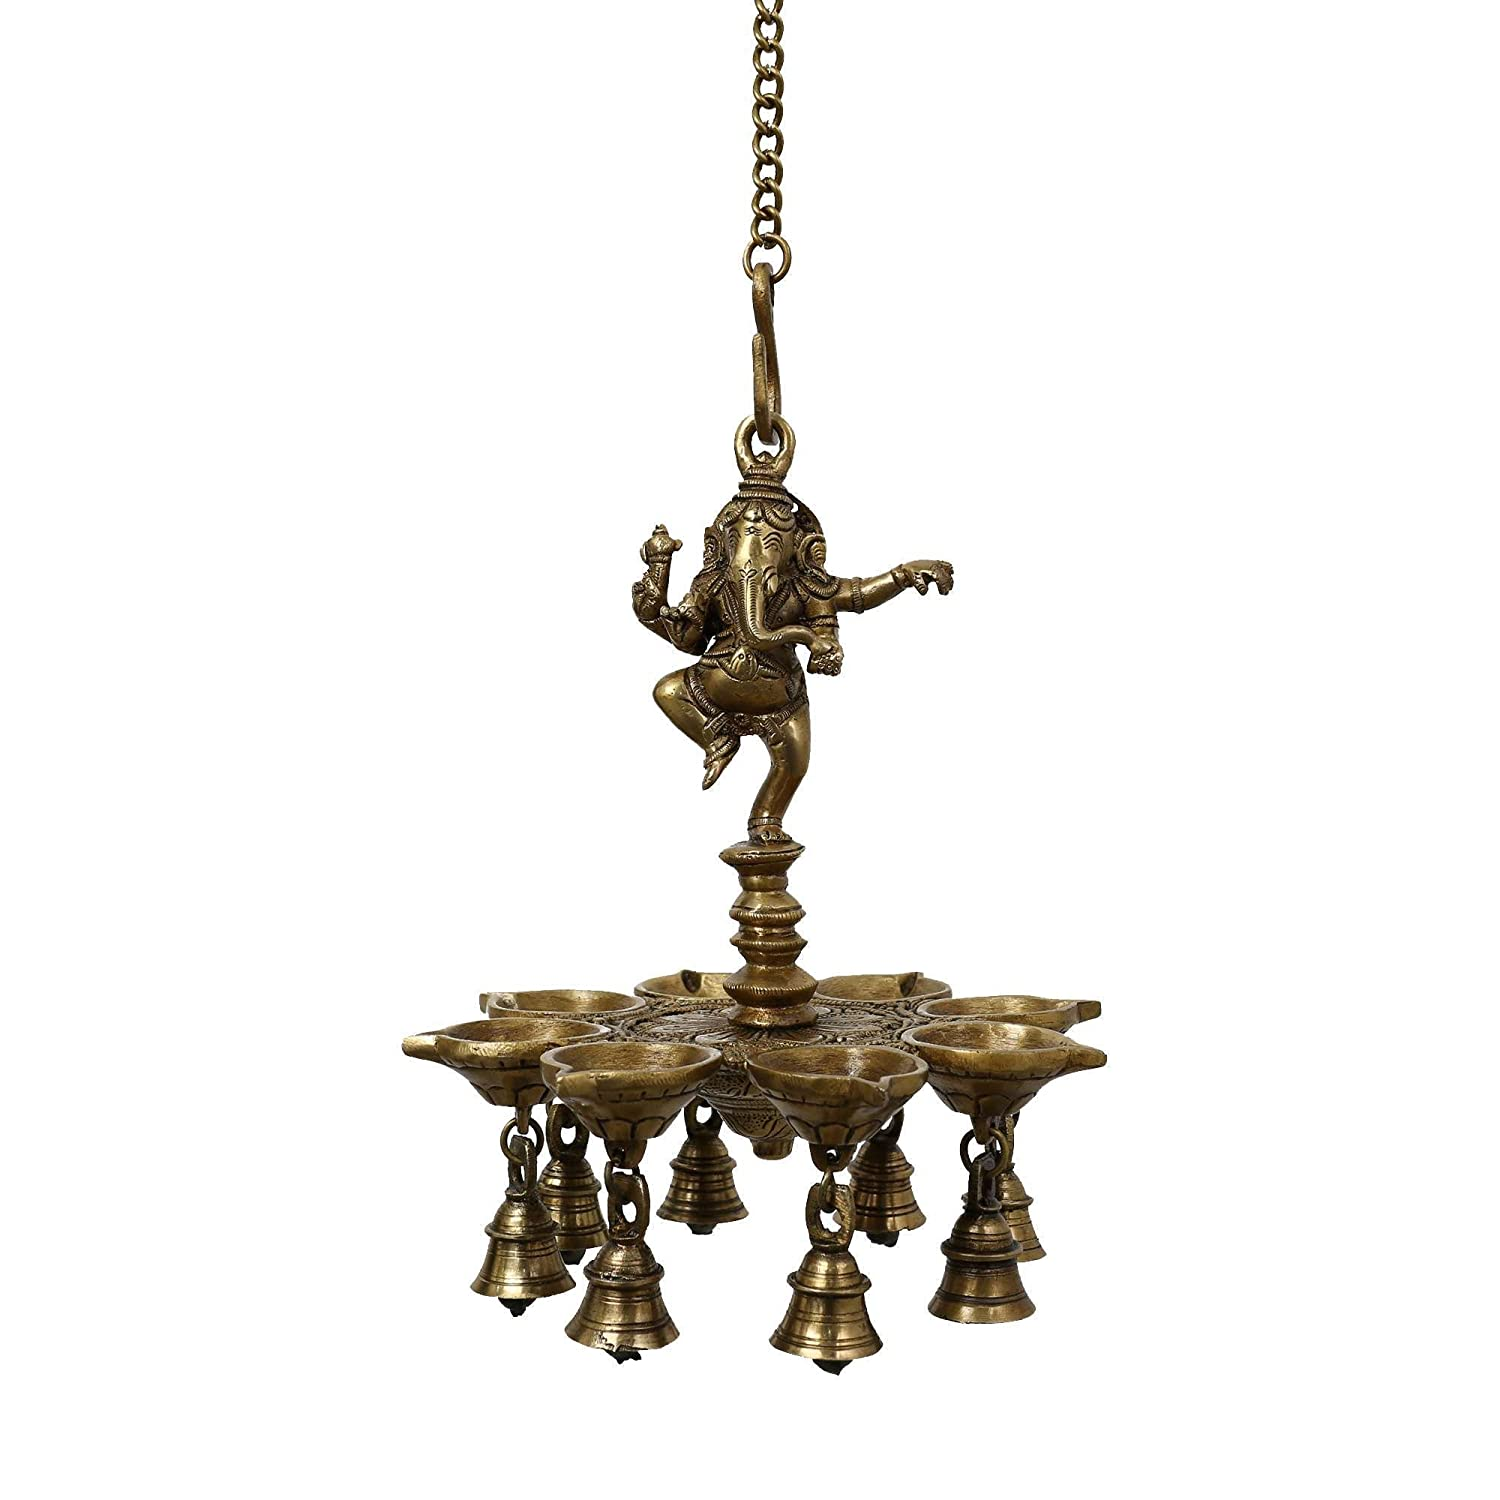 Amazon Indian Lamp Set Diwali Lights Hanging Bells Ganesha Sculpture Art Metal Brass Home Kitchen